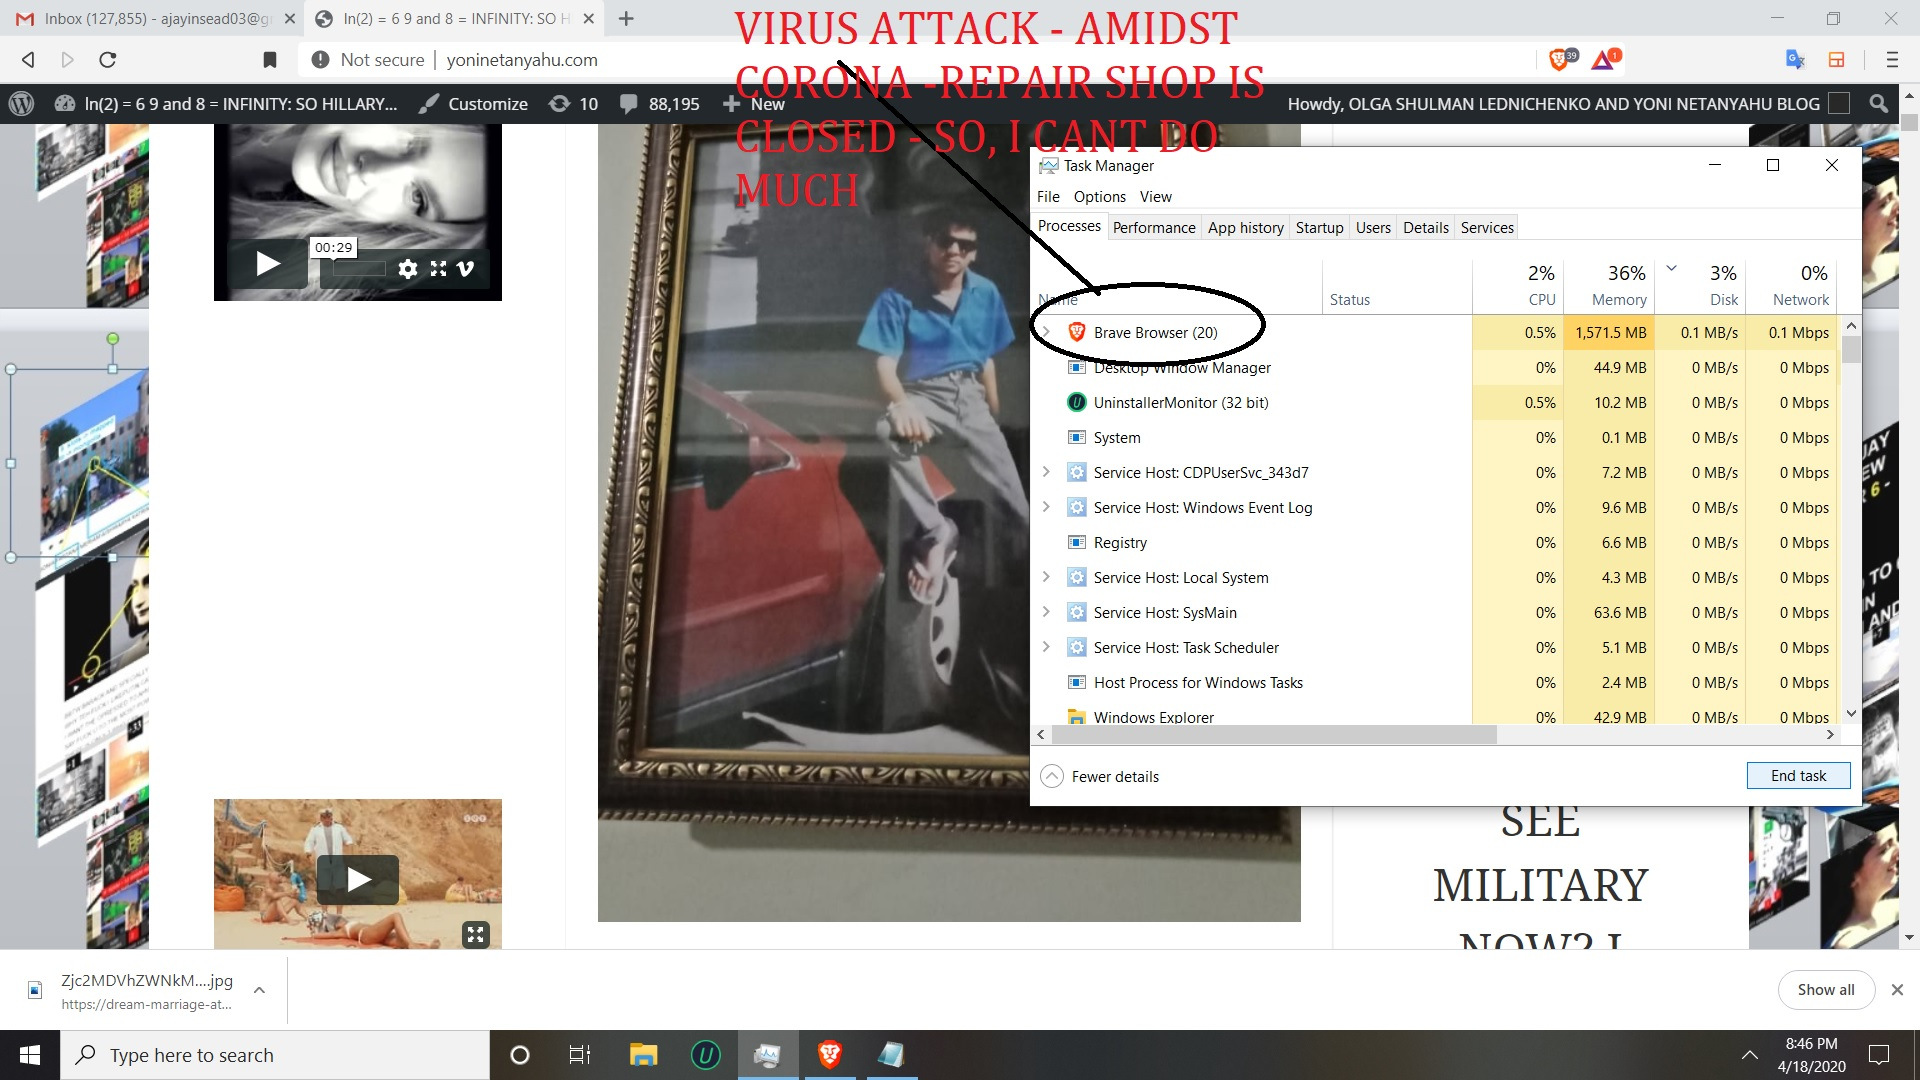 VIRUS ATTACK - AMIDST CORONA -REPAIR SHOP IS CLOSED - SO, I CANT DO MUCH